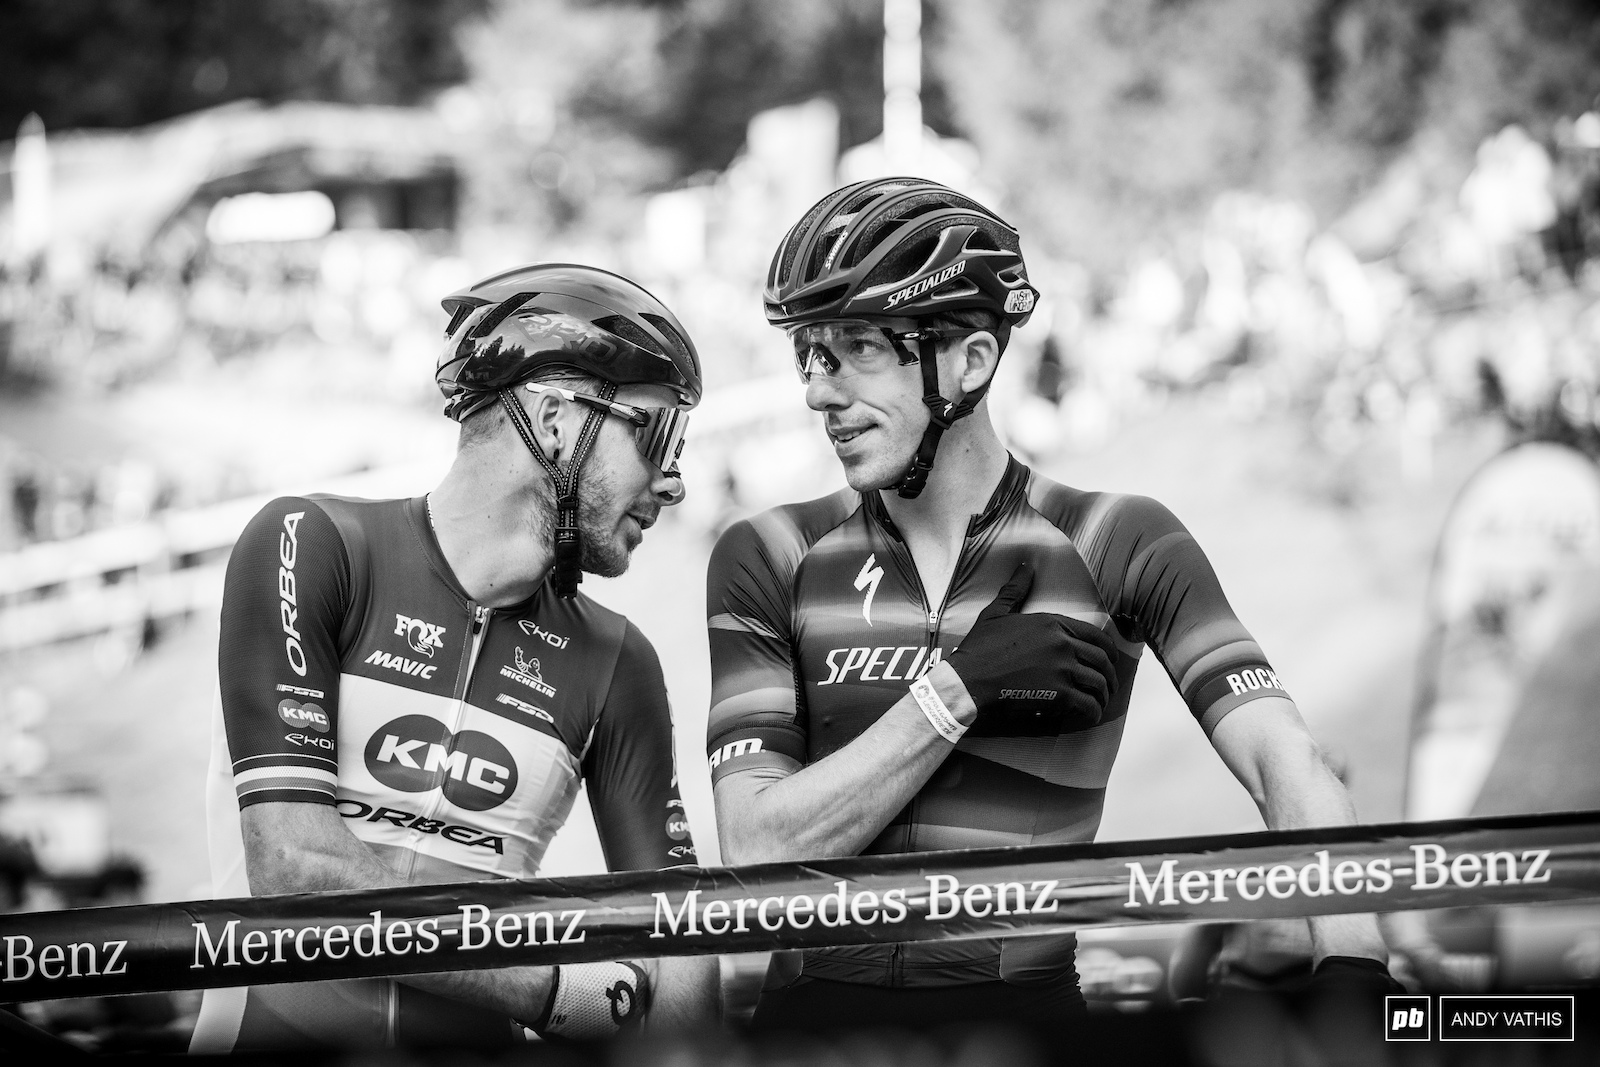 Victor Koretzky and Jordan Sarrou having a chat before the start.